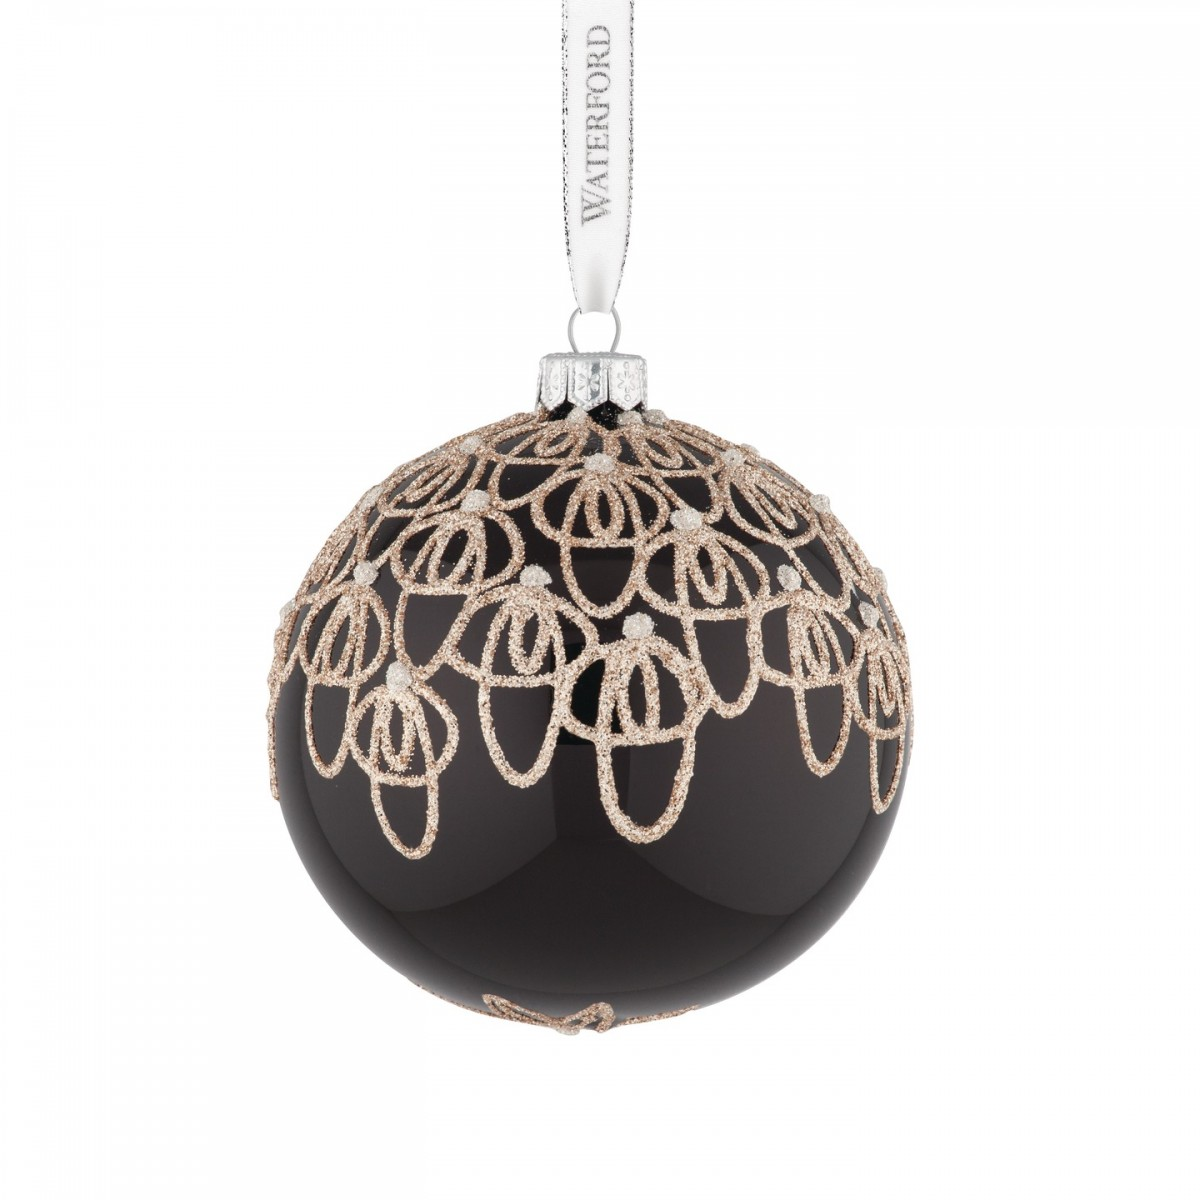 Waterford - 2015 Holiday Heirlooms Black Tie Ball Ornament ...